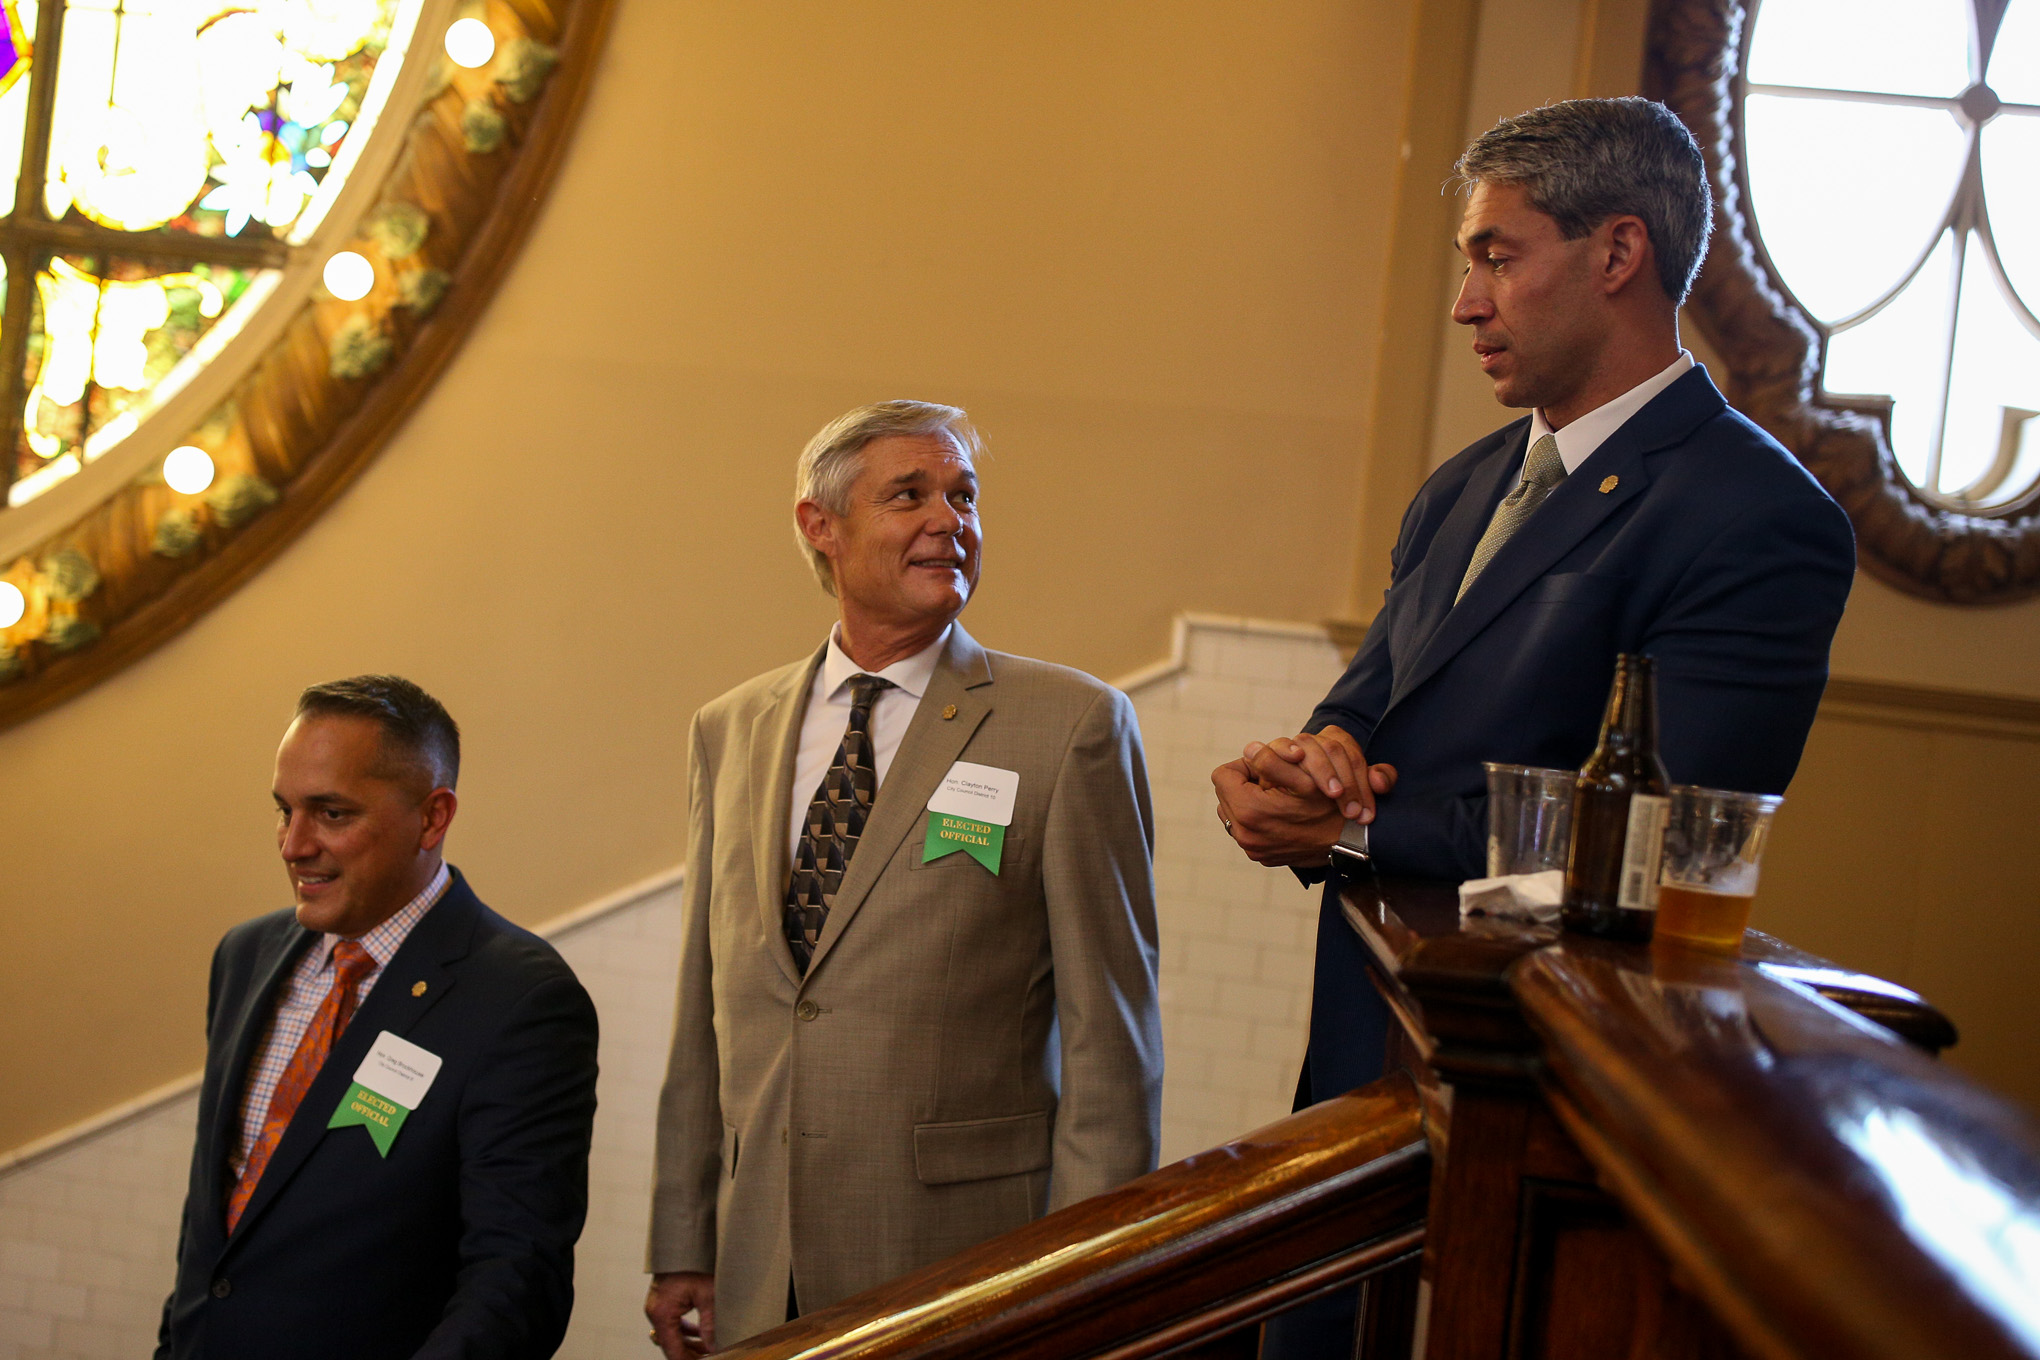 (from left) Councilman Greg Brockhouse (D6), Councilman Clayton Perry (D10), and Mayor Ron Nirenberg form a line to be introduced.